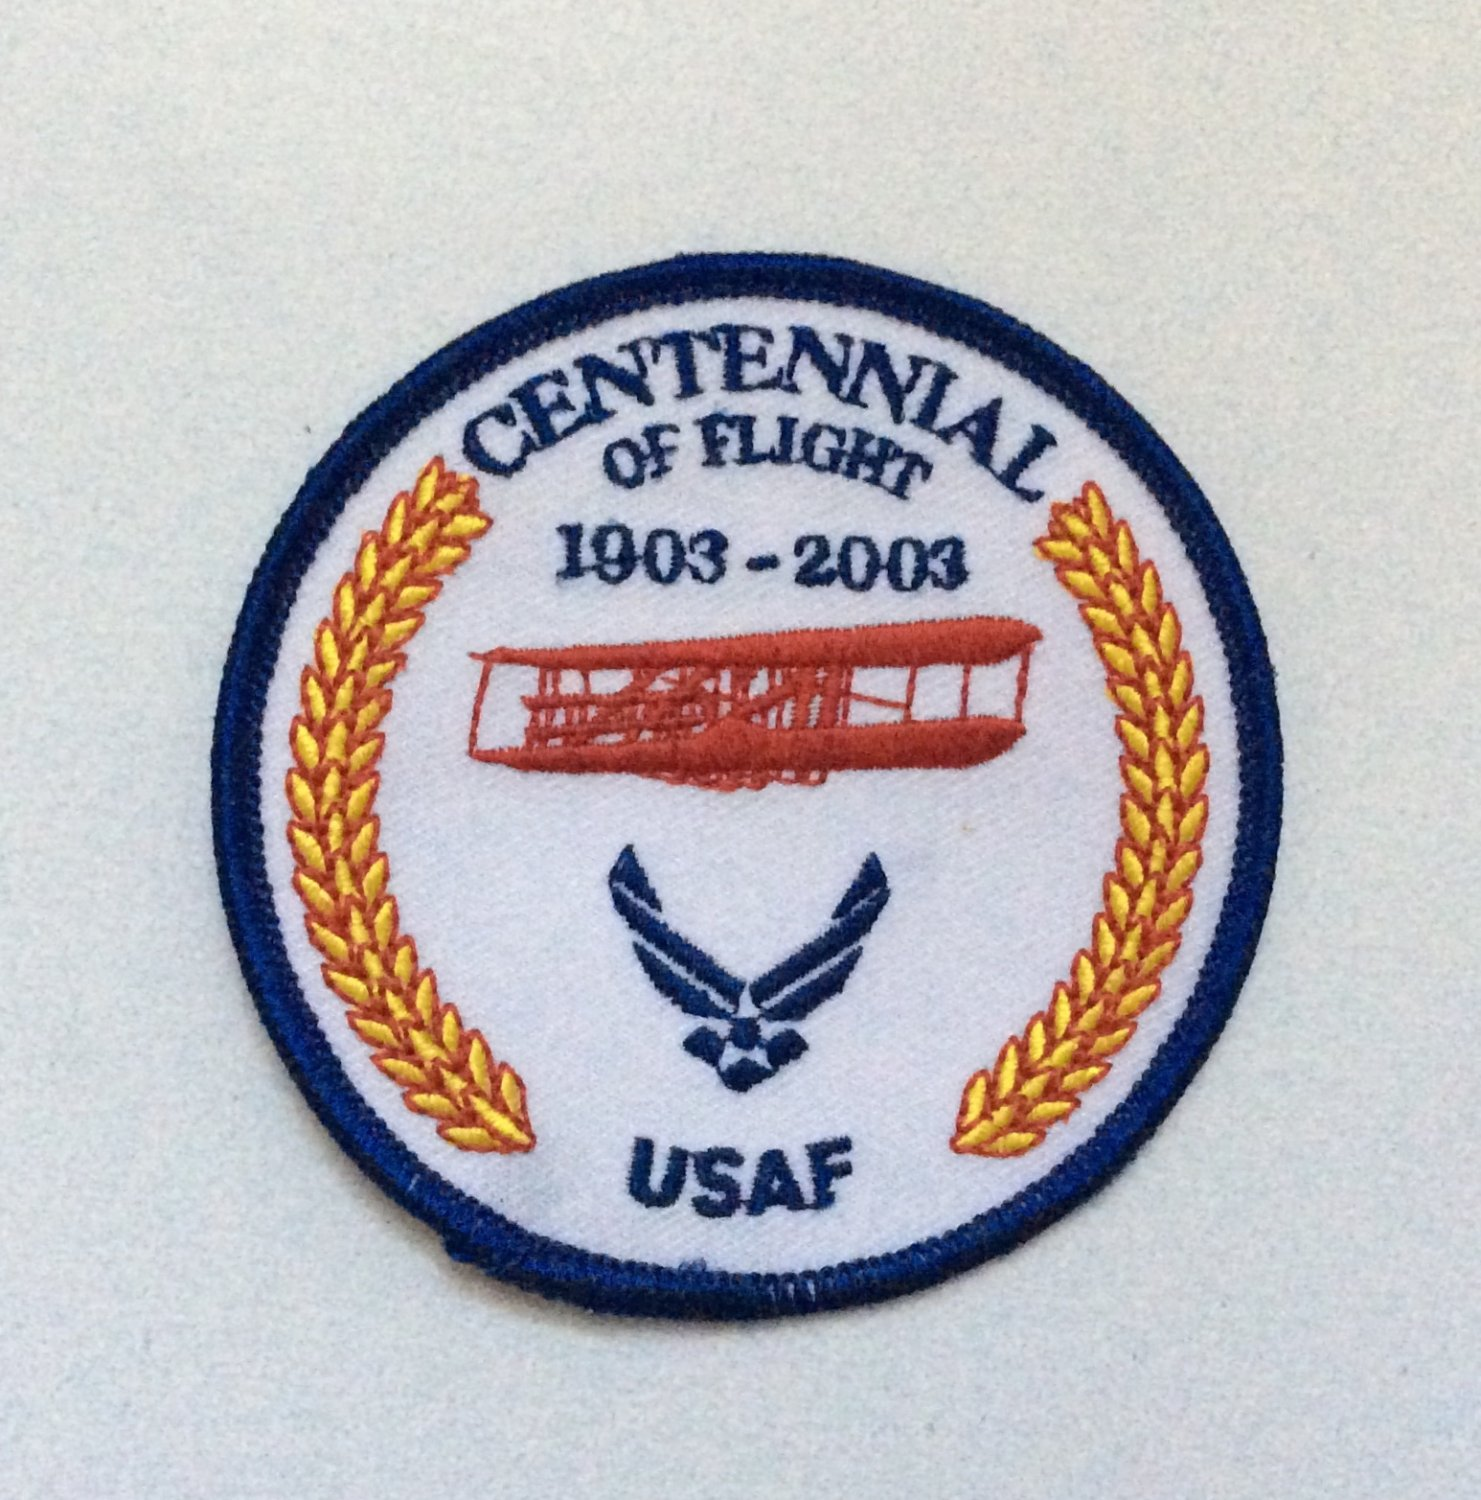 PATCH Badge USAF Centennial Of Flight 1903-2003 Military US Air Force AVGEEK